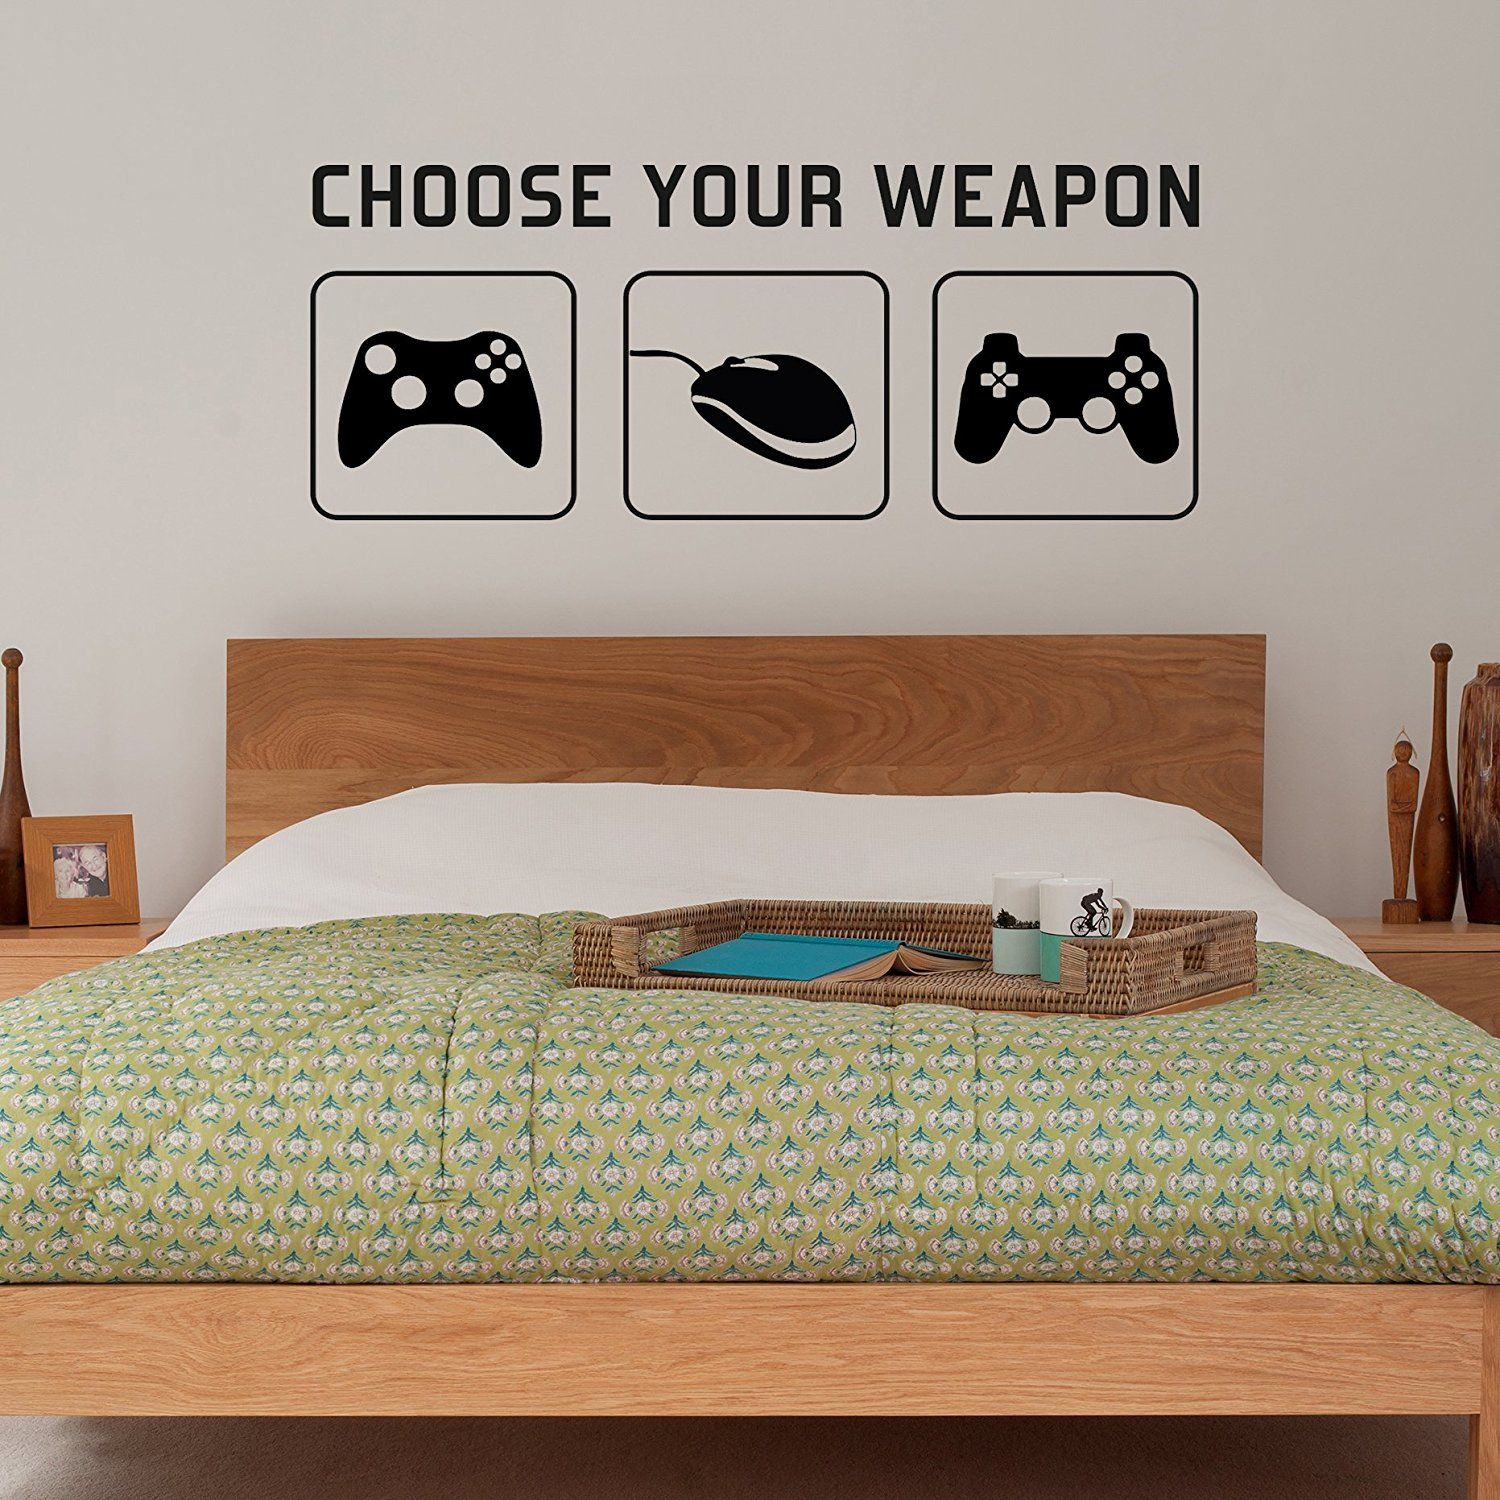 Radecalchoose your weapon video gaming vinyl decal wandsticker radecalchoose your weapon video gaming vinyl decal wandsticker fr kinder teenager thecheapjerseys Choice Image